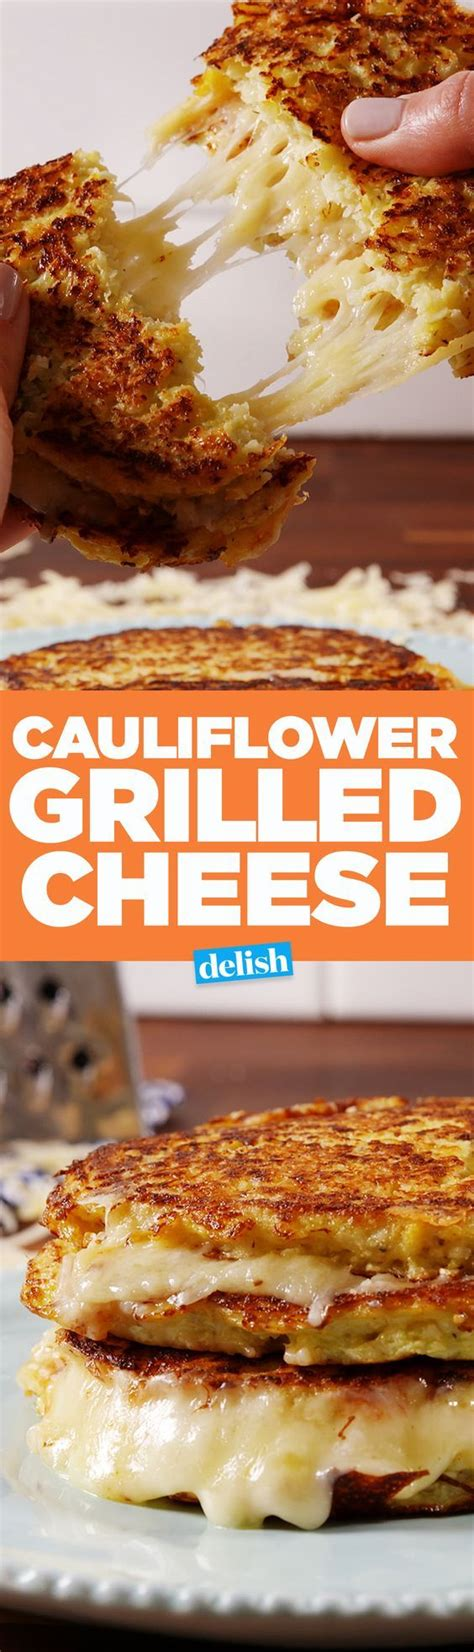 cauliflower grilled cheese cauliflower grilled cheese recipe